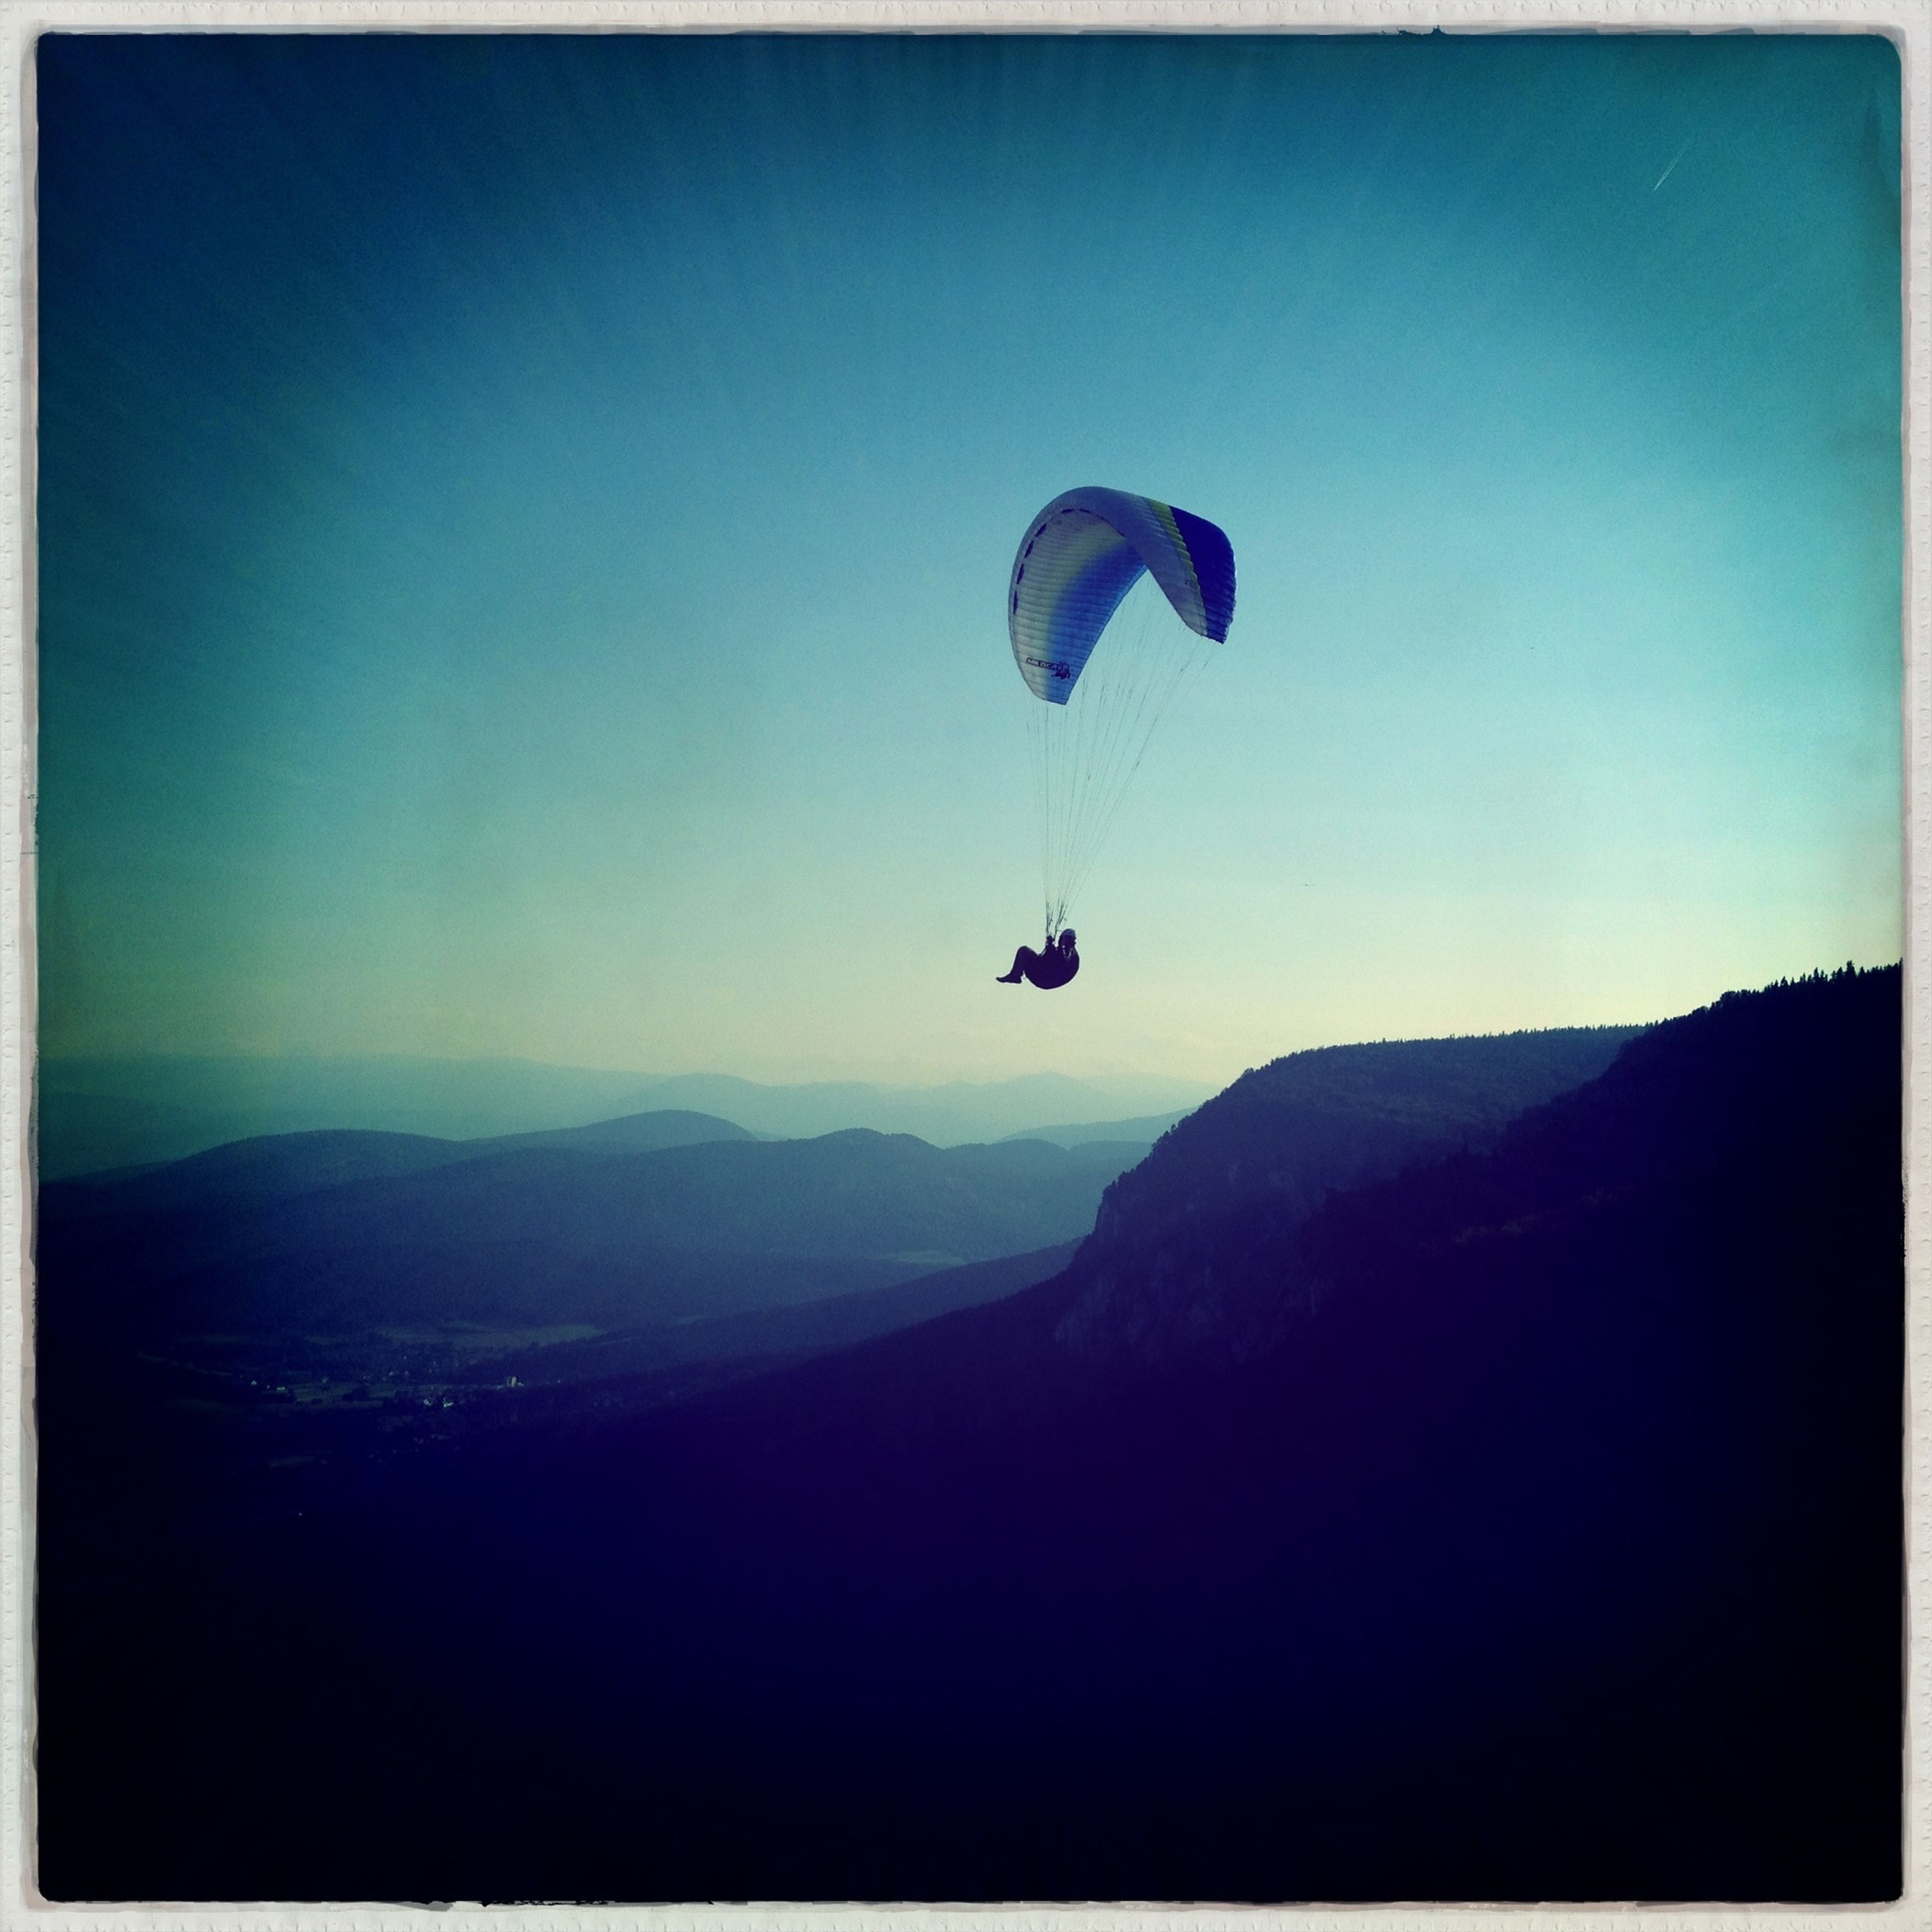 mountain, mid-air, extreme sports, adventure, flying, parachute, paragliding, leisure activity, clear sky, scenics, blue, copy space, tranquil scene, lifestyles, tranquility, transportation, sport, mountain range